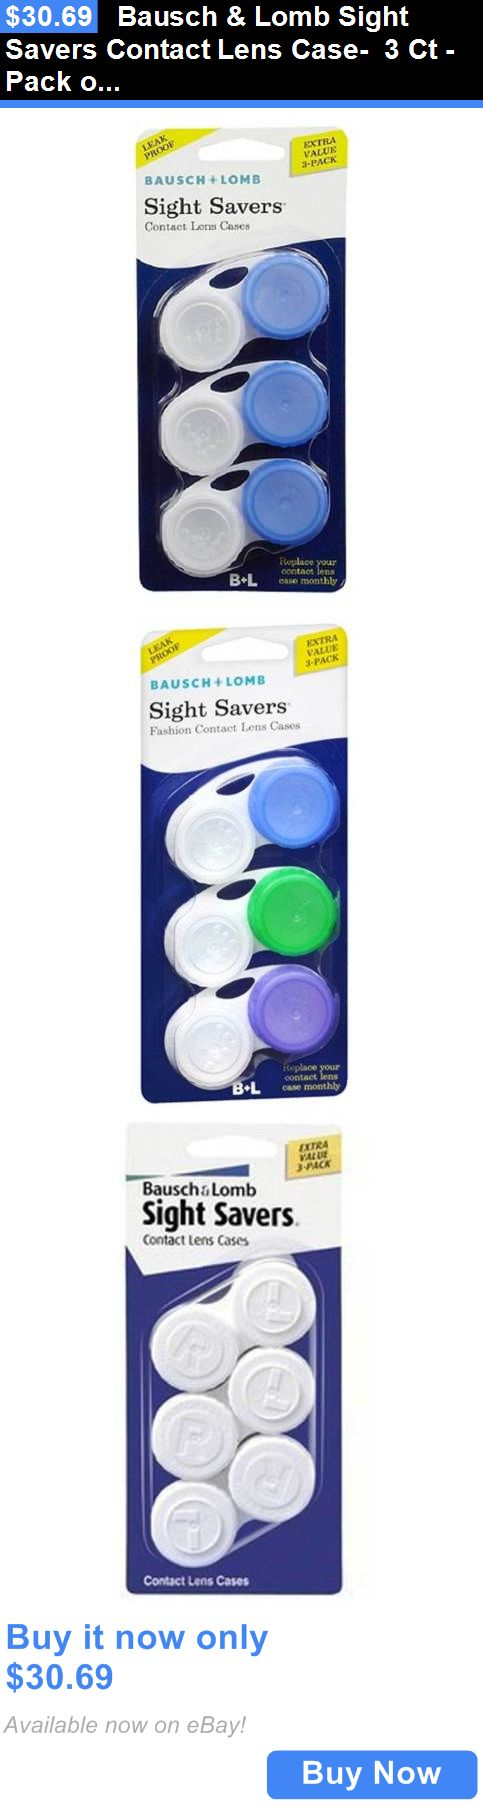 Contact Lens Cases: Bausch And Lomb Sight Savers Contact Lens Case- 3 Ct - Pack Of 6 BUY IT NOW ONLY: $30.69